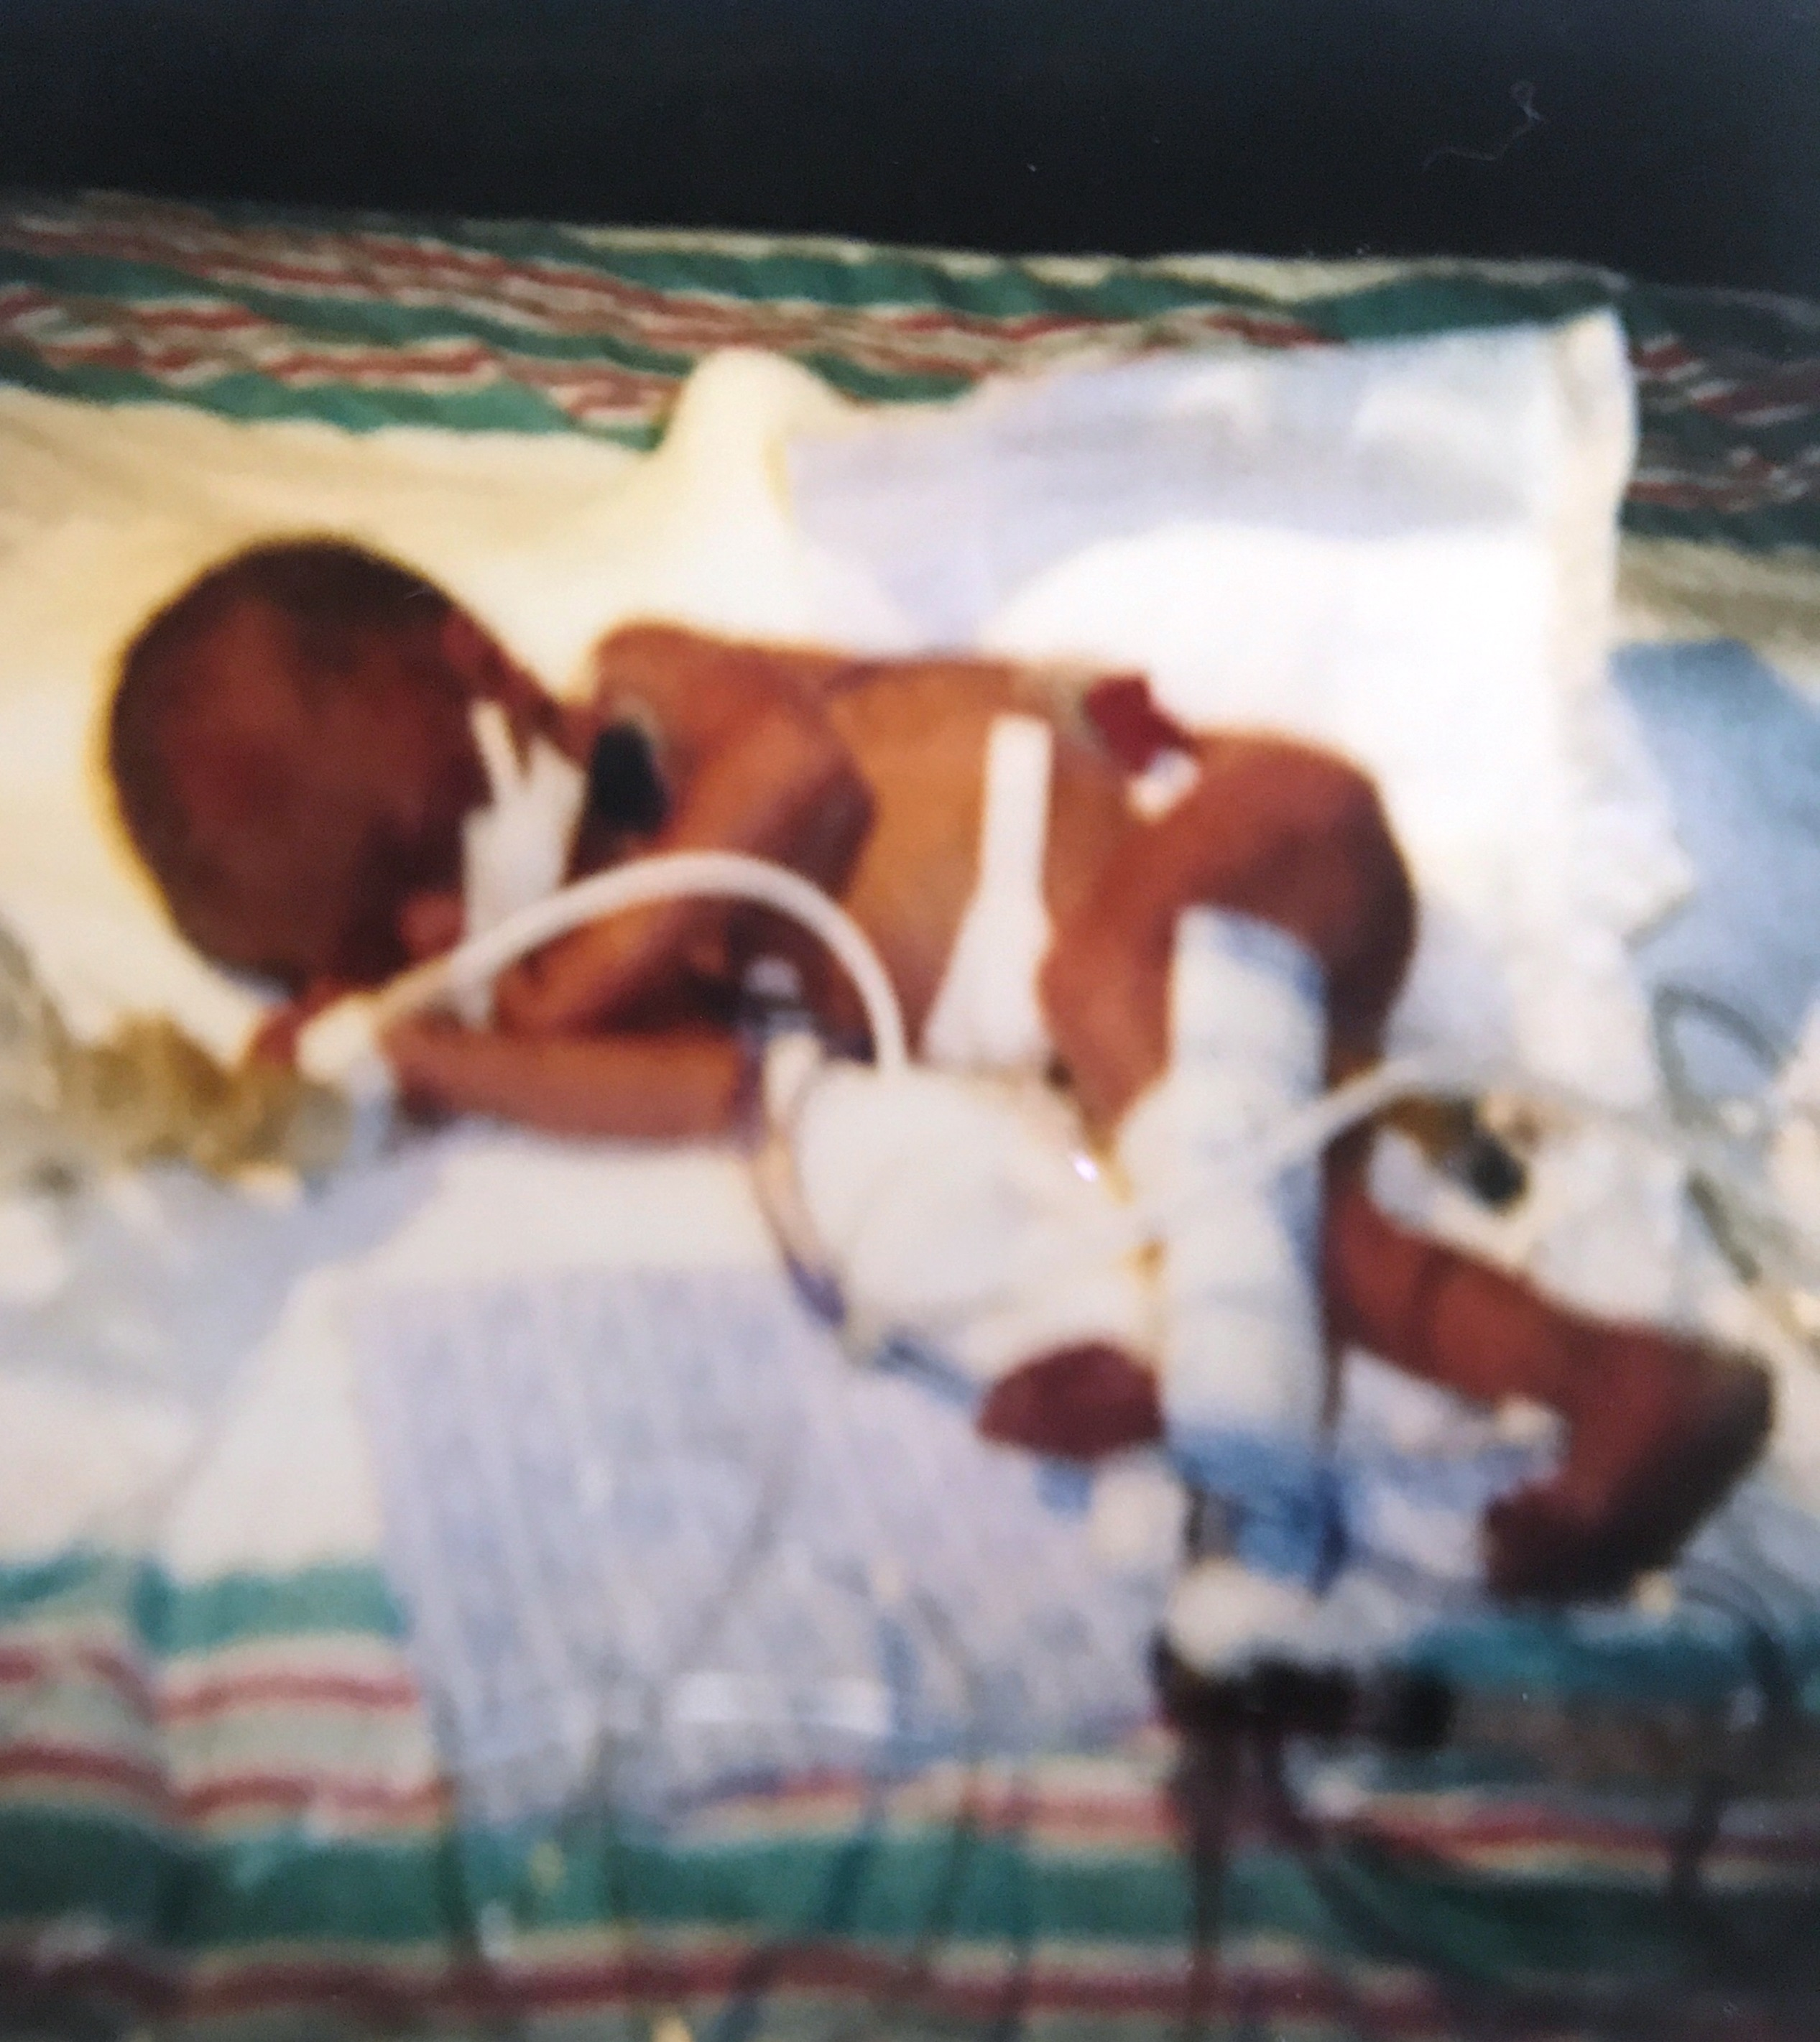 From preemie to premed: former NICU baby all grown up, ready